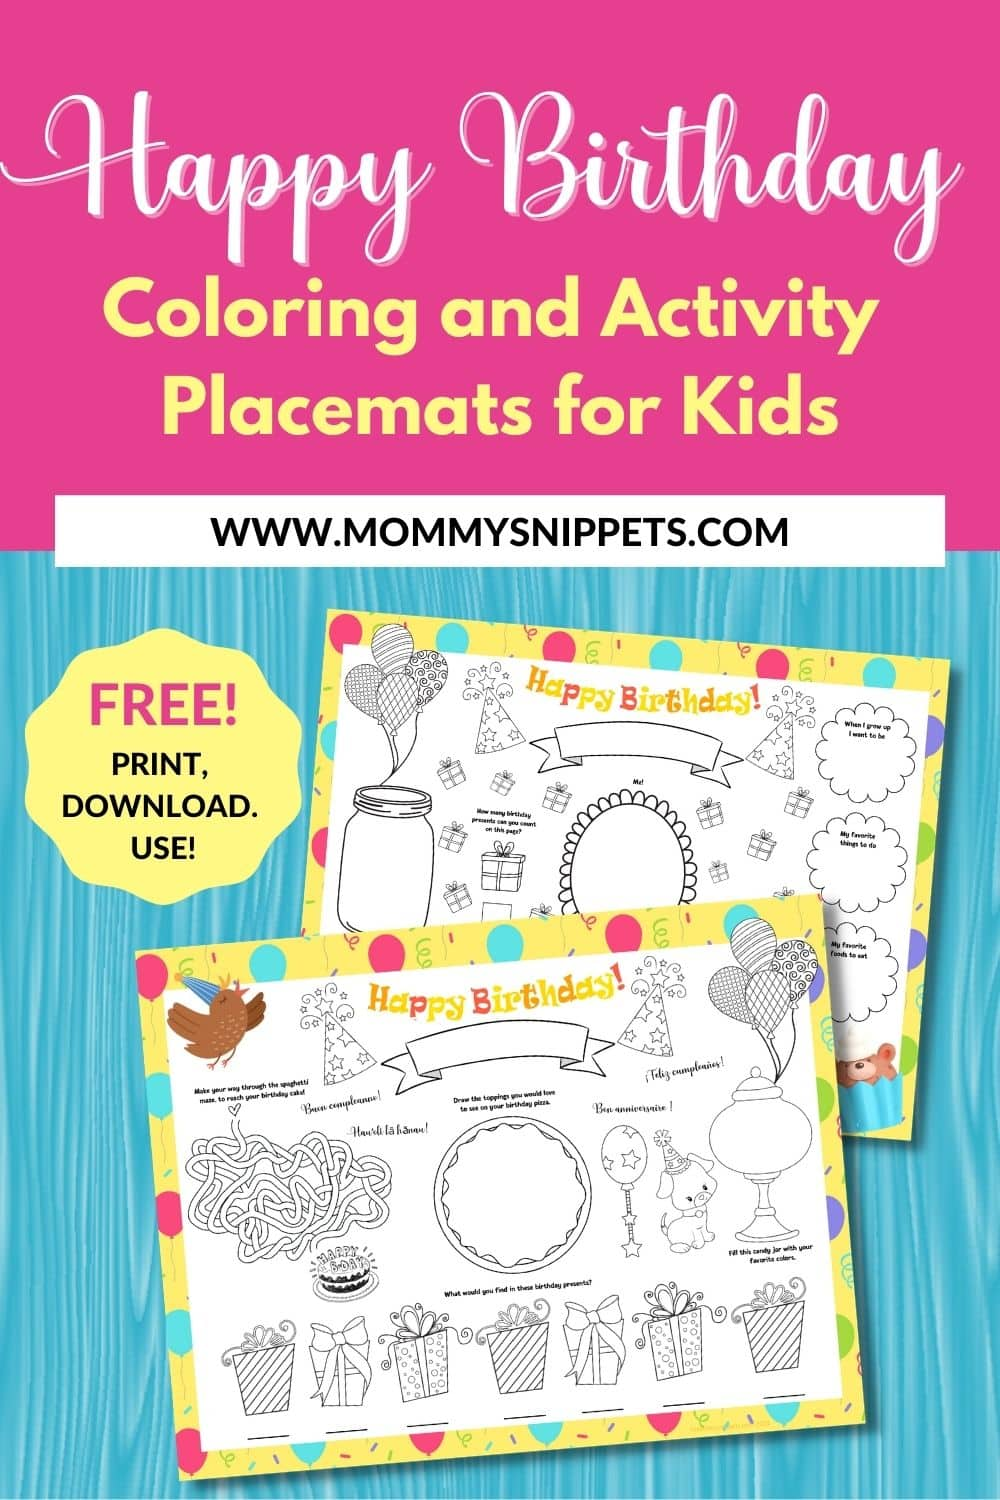 A Free Happy Birthday Printable Coloring and Activity Placemat